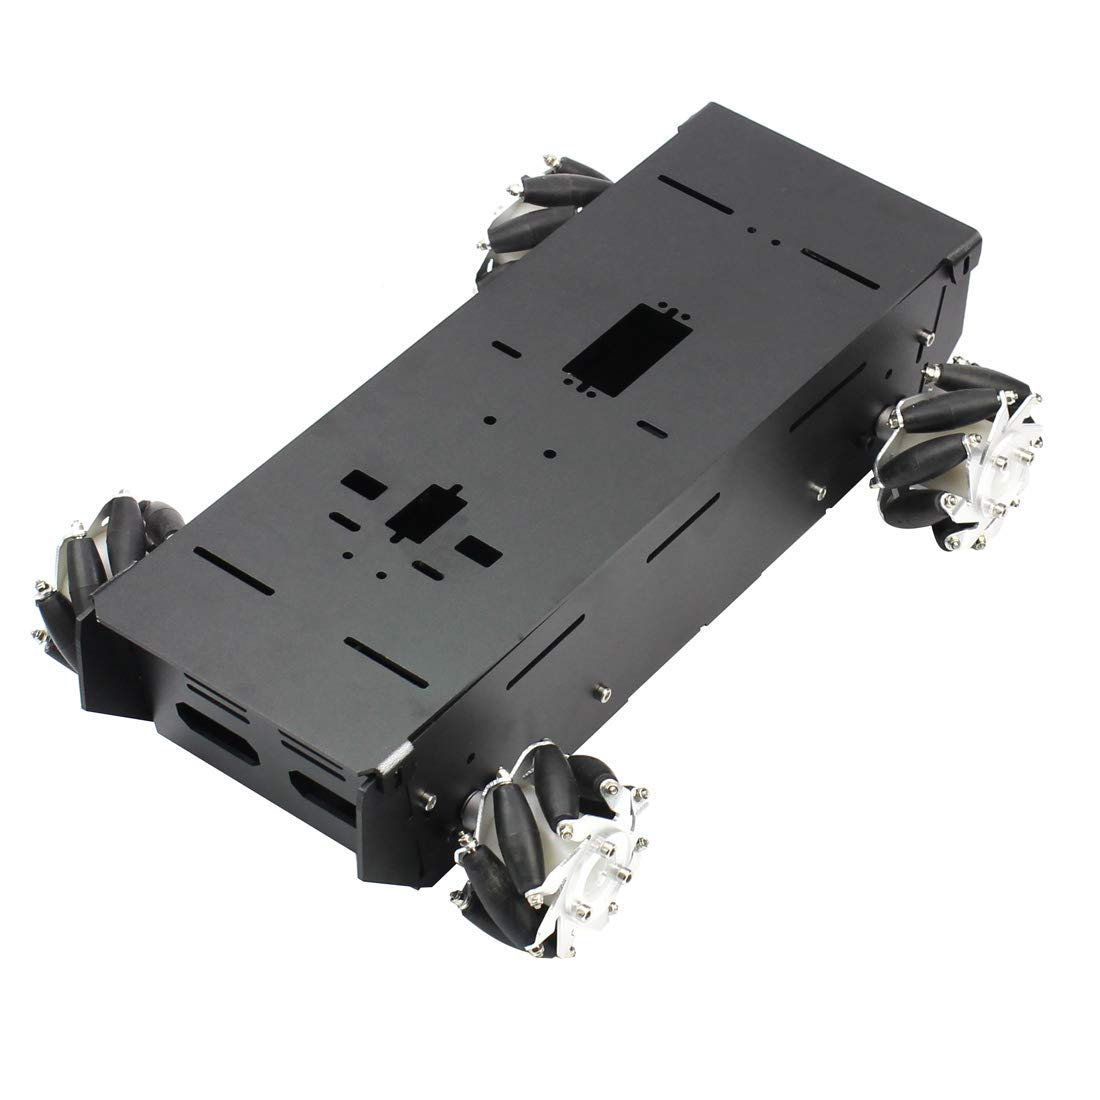 4WD RC Smart Car Chassis For Arduino Platform with 12V Motor DIY 4 Wheel Robot